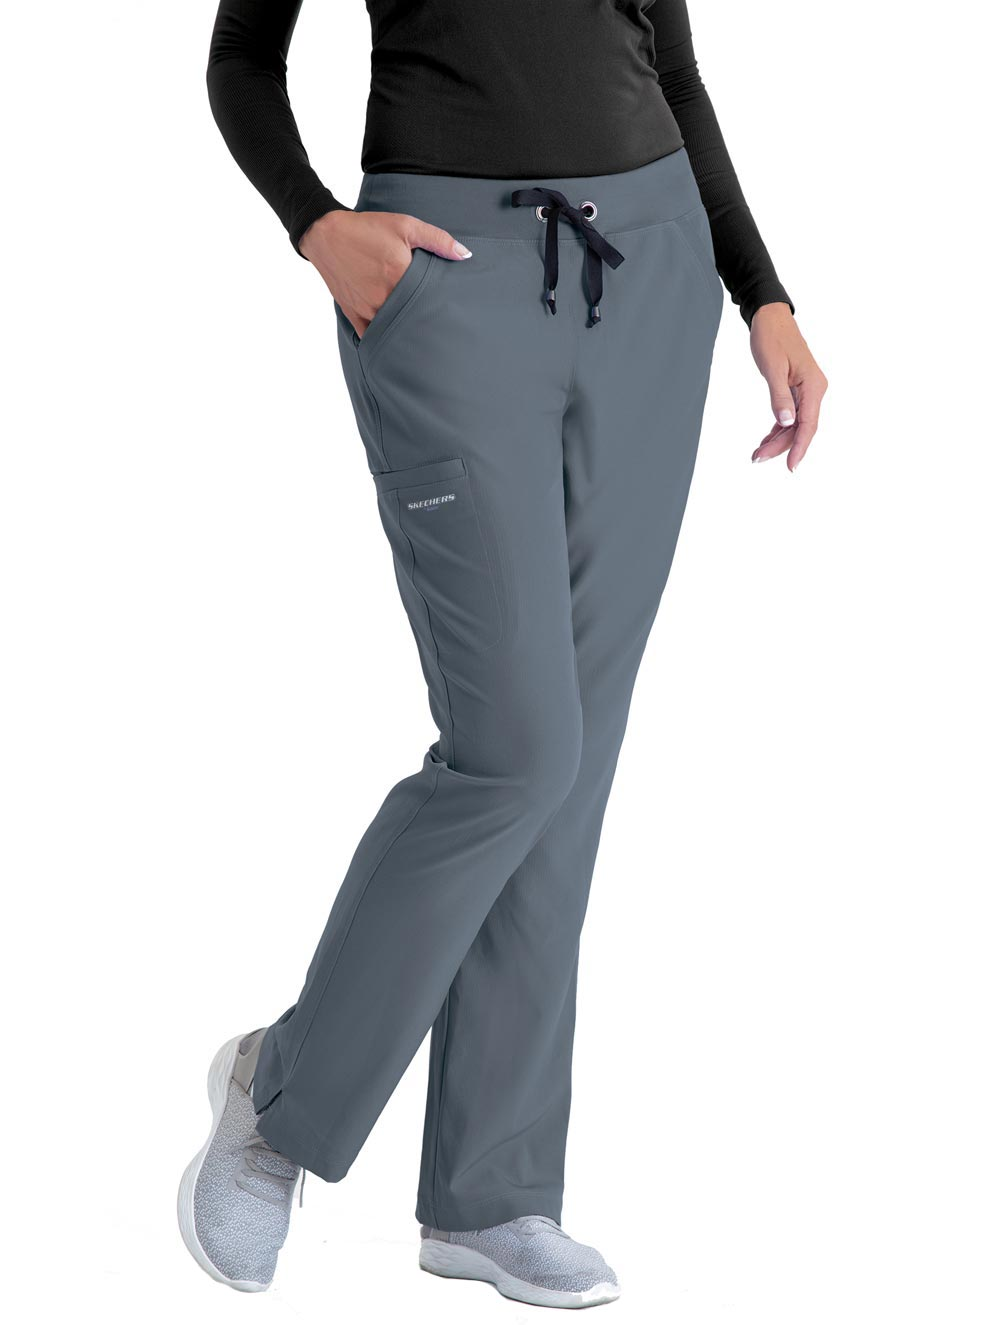 Women's 'Focus' 3 Pocket Knit Waist Cargo Scrub Pants